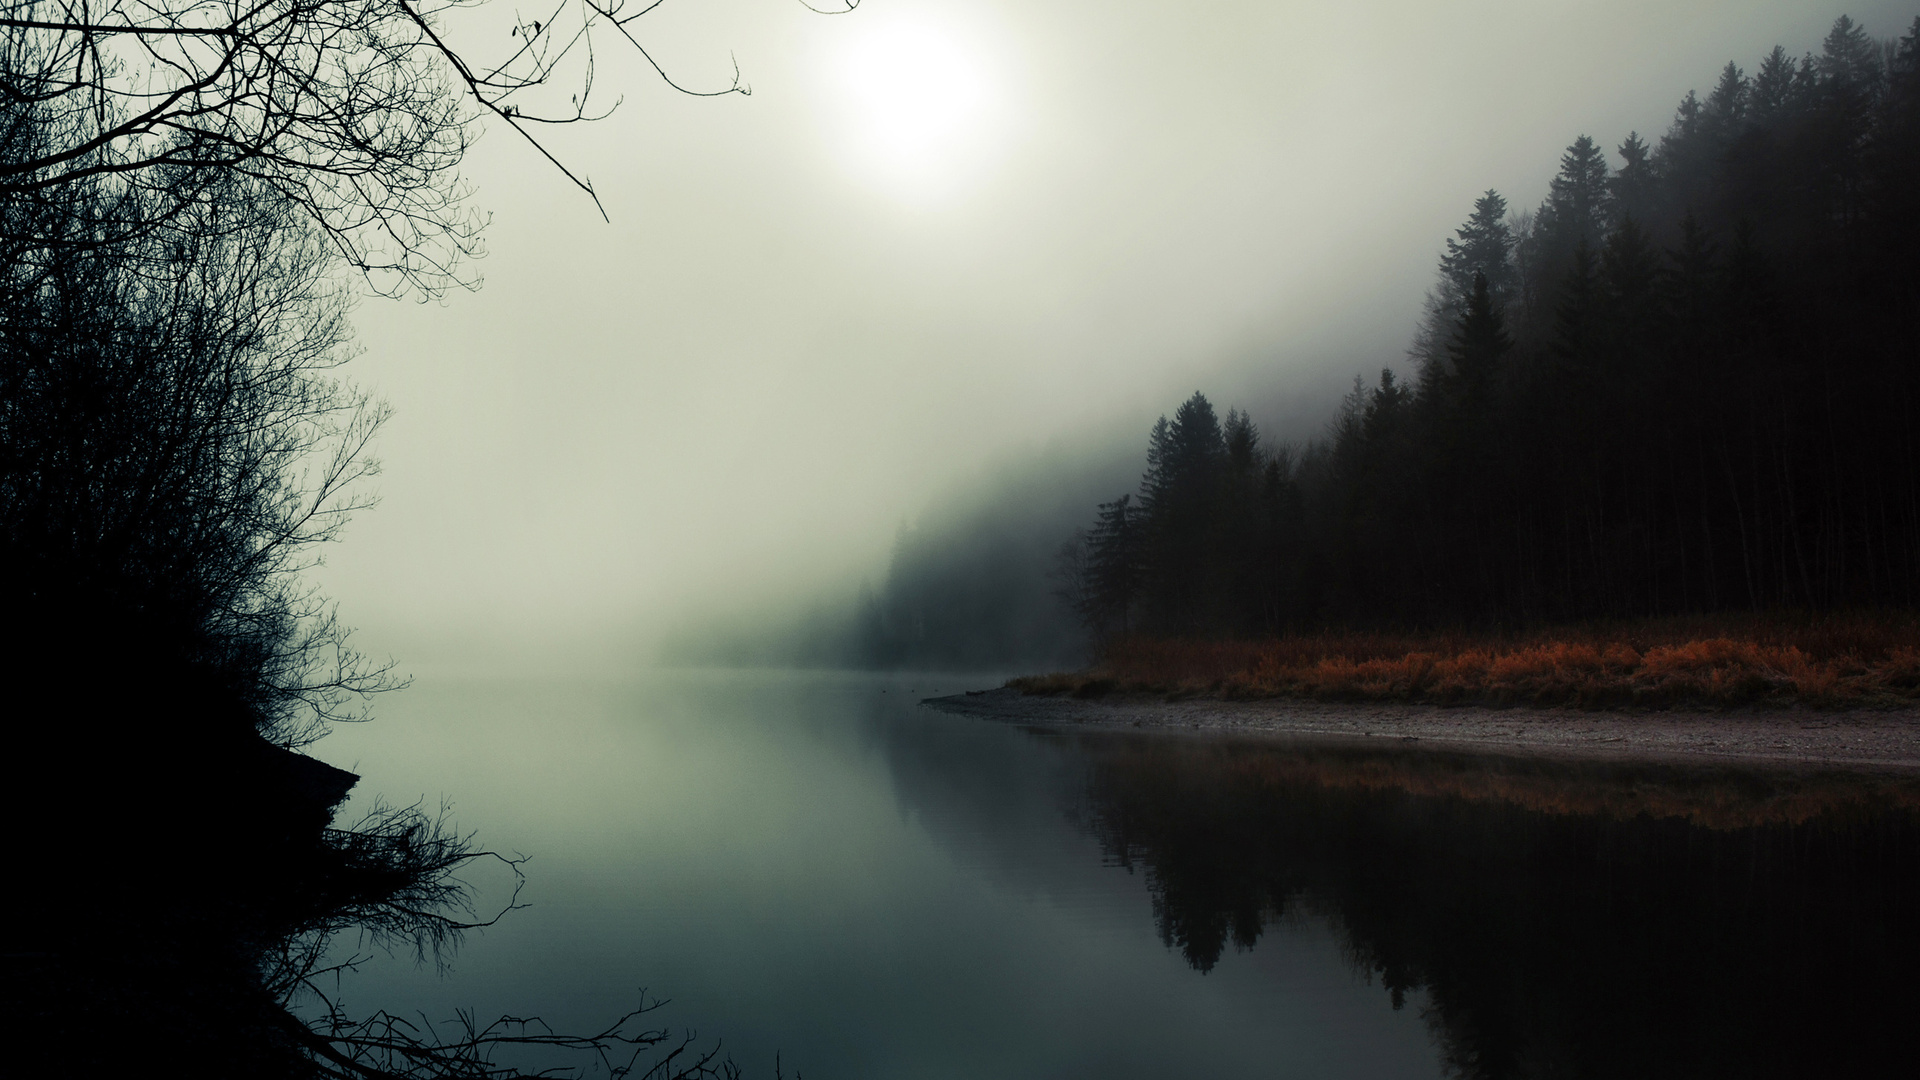 misty fog landscape wallpapers - photo #16